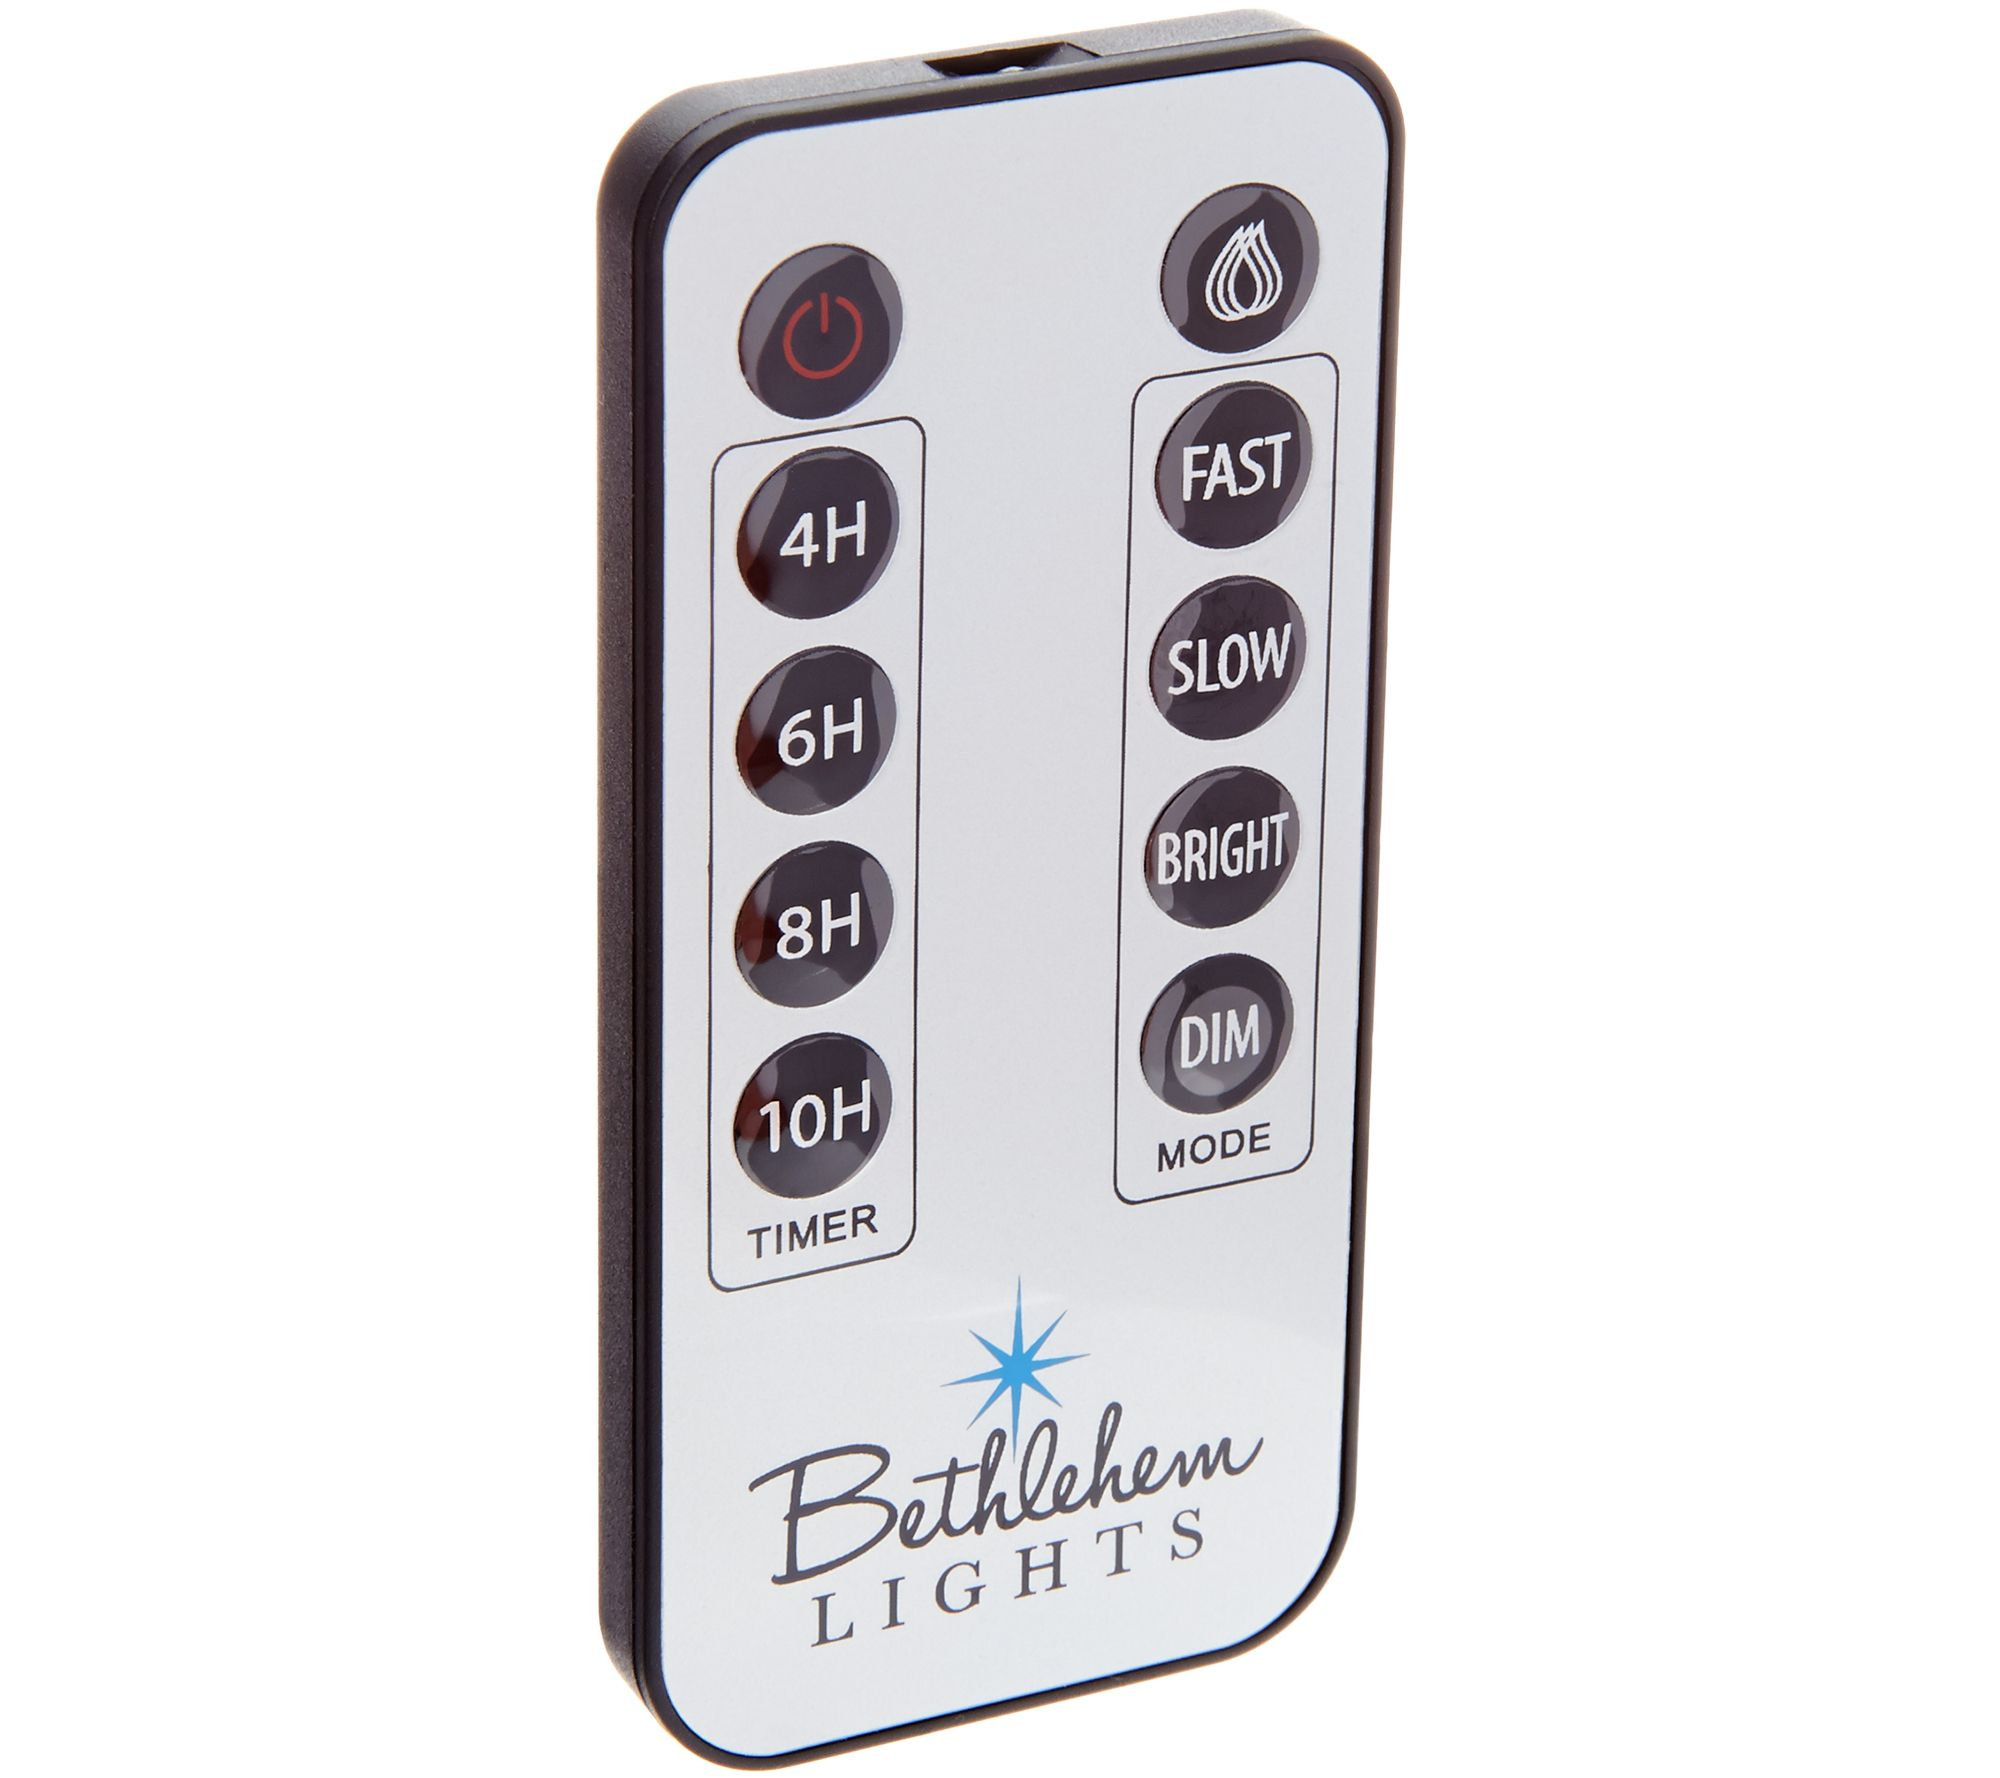 bethlehem lighting. Bethlehem Lights Touch Candle Remote Control - H213008 Lighting